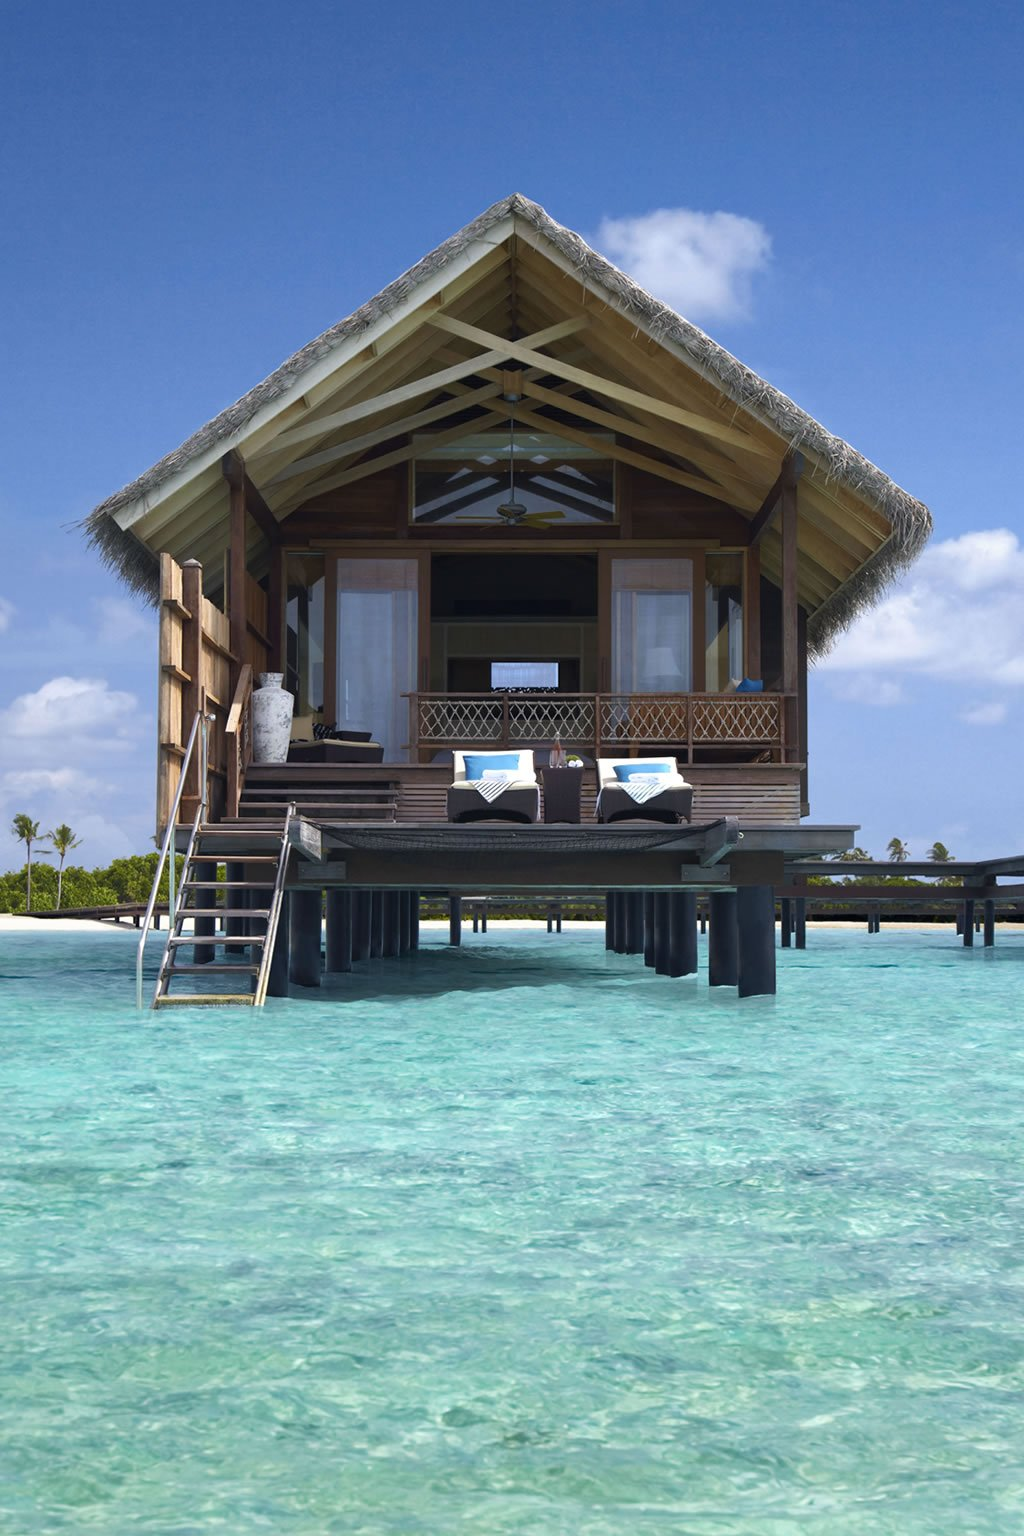 Beach House With Transitional Interiors: Top 9 Most Exquisite Overwater Villas In The World